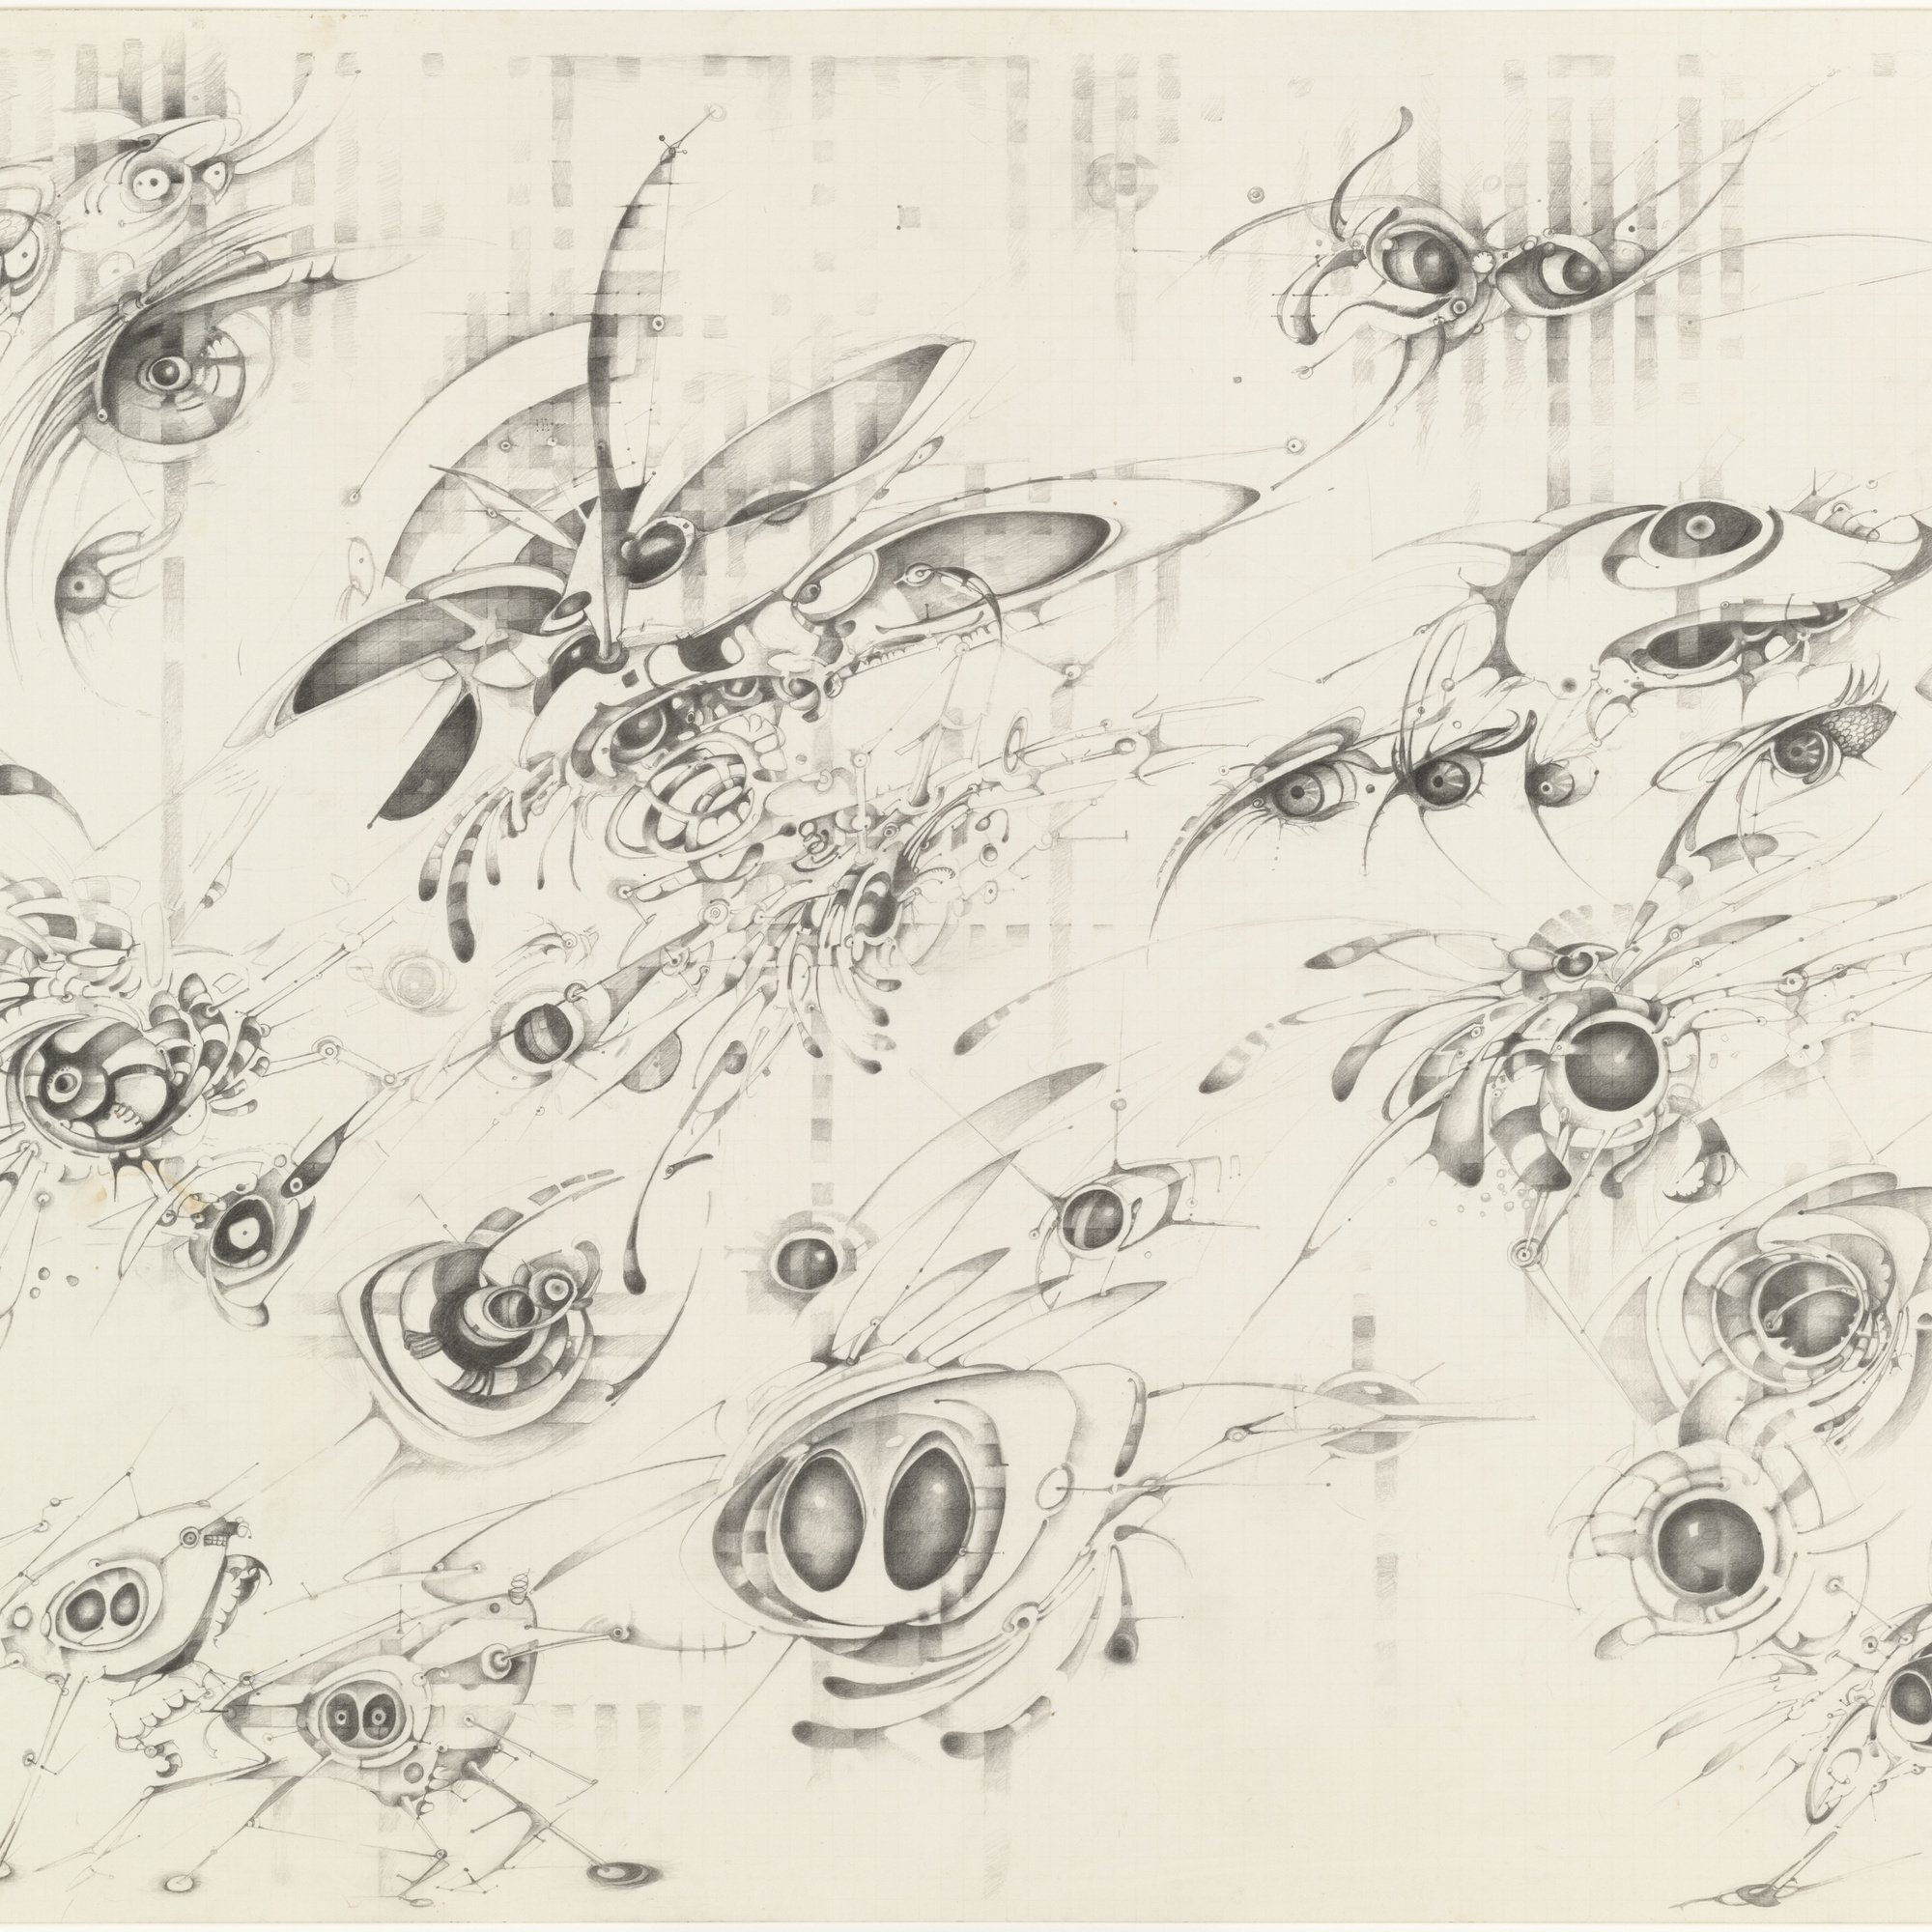 Lee Bontecou. Untitled. 1997. Pencil on graph paper, 22 × 30″ (55.9 × 76.2 cm). The Judith Rothschild Foundation Contemporary Drawings Collection Gift. © 2016 Lee Bontecou